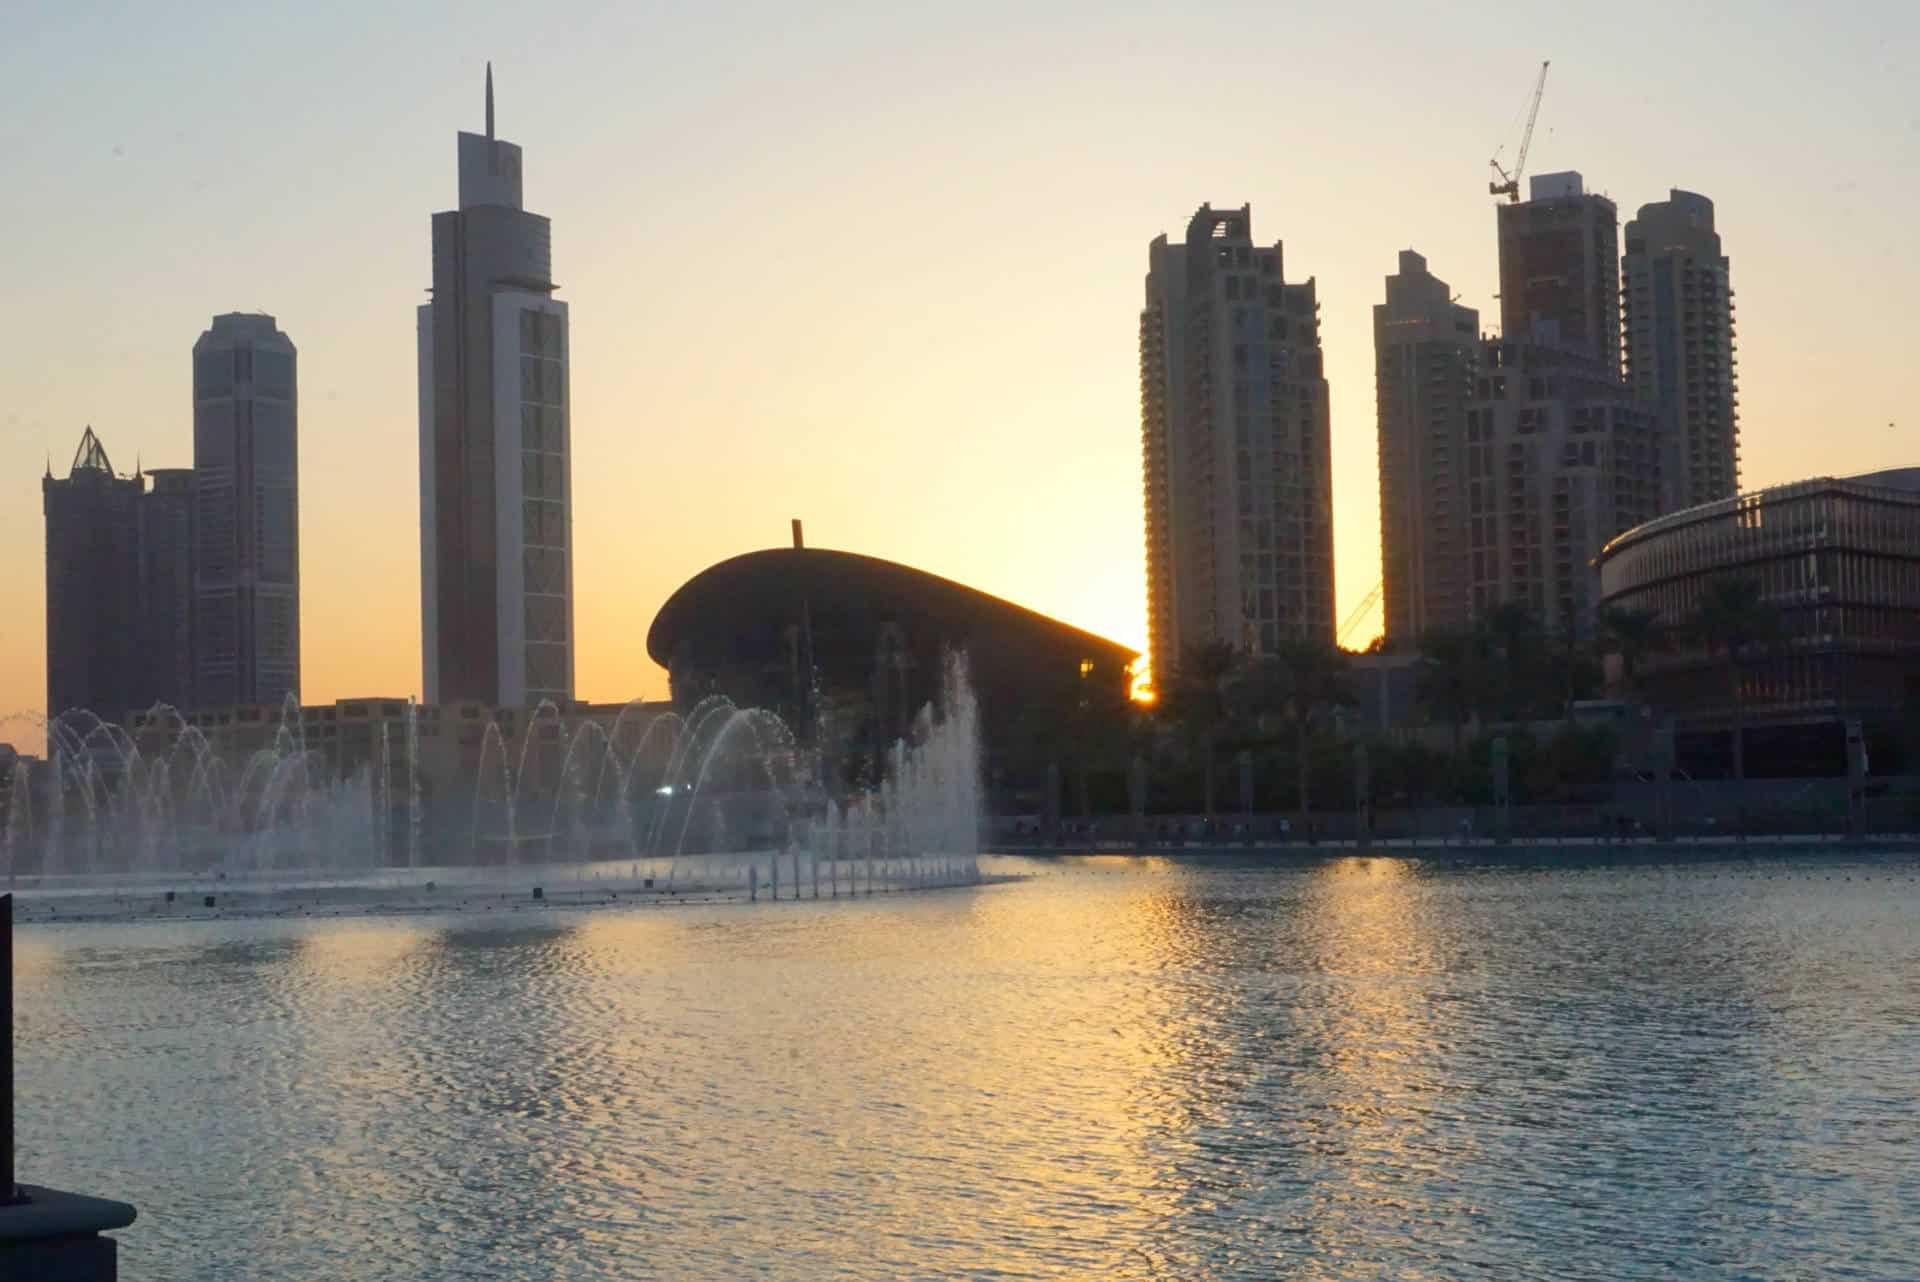 Downtown Dubai At Dusk The Best Time To See The Dubai Fountains www.extraordinarychaos.com